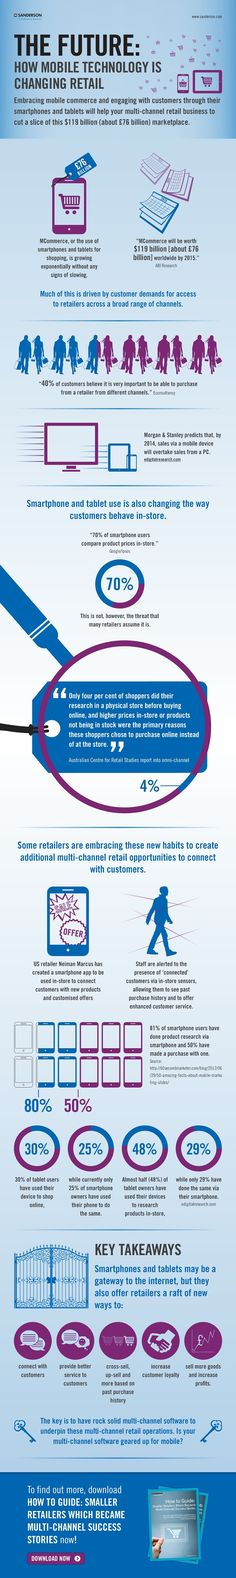 The Future: How Mobile Technology is Changing Retail   #infographic #Retail #Business